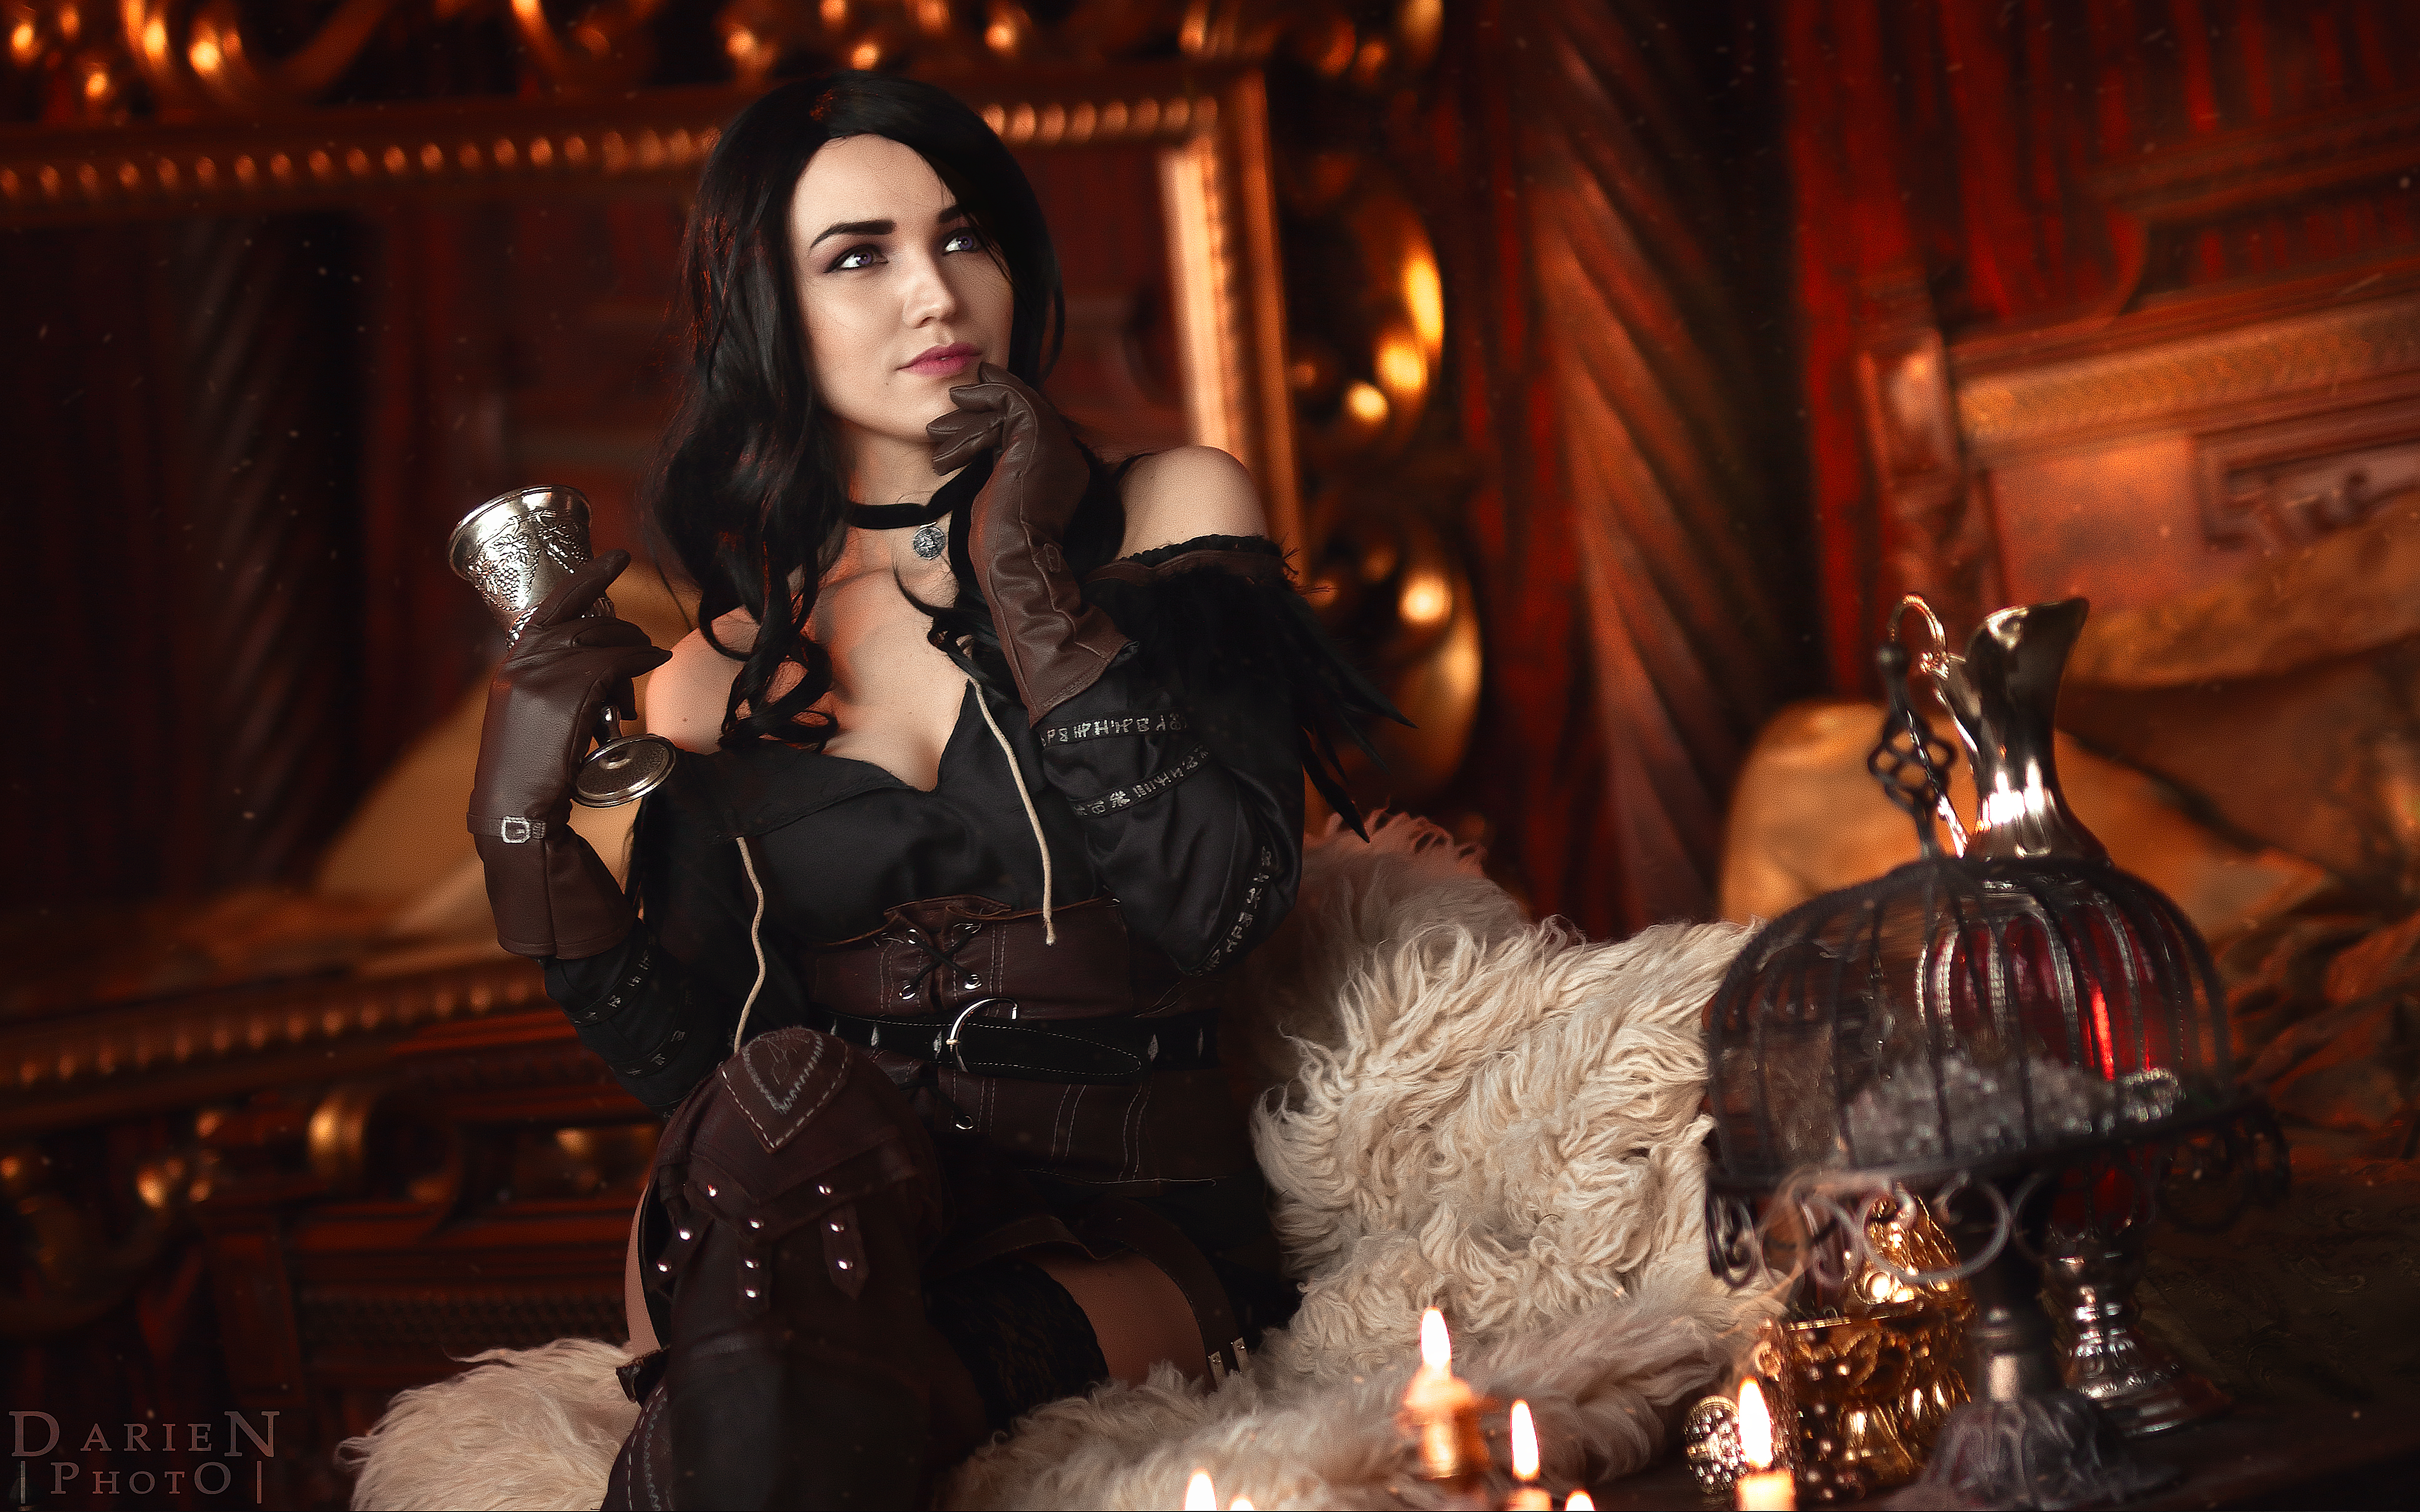 63 Yennefer Of Vengerberg Hd Wallpapers Background Images Wallpaper Abyss